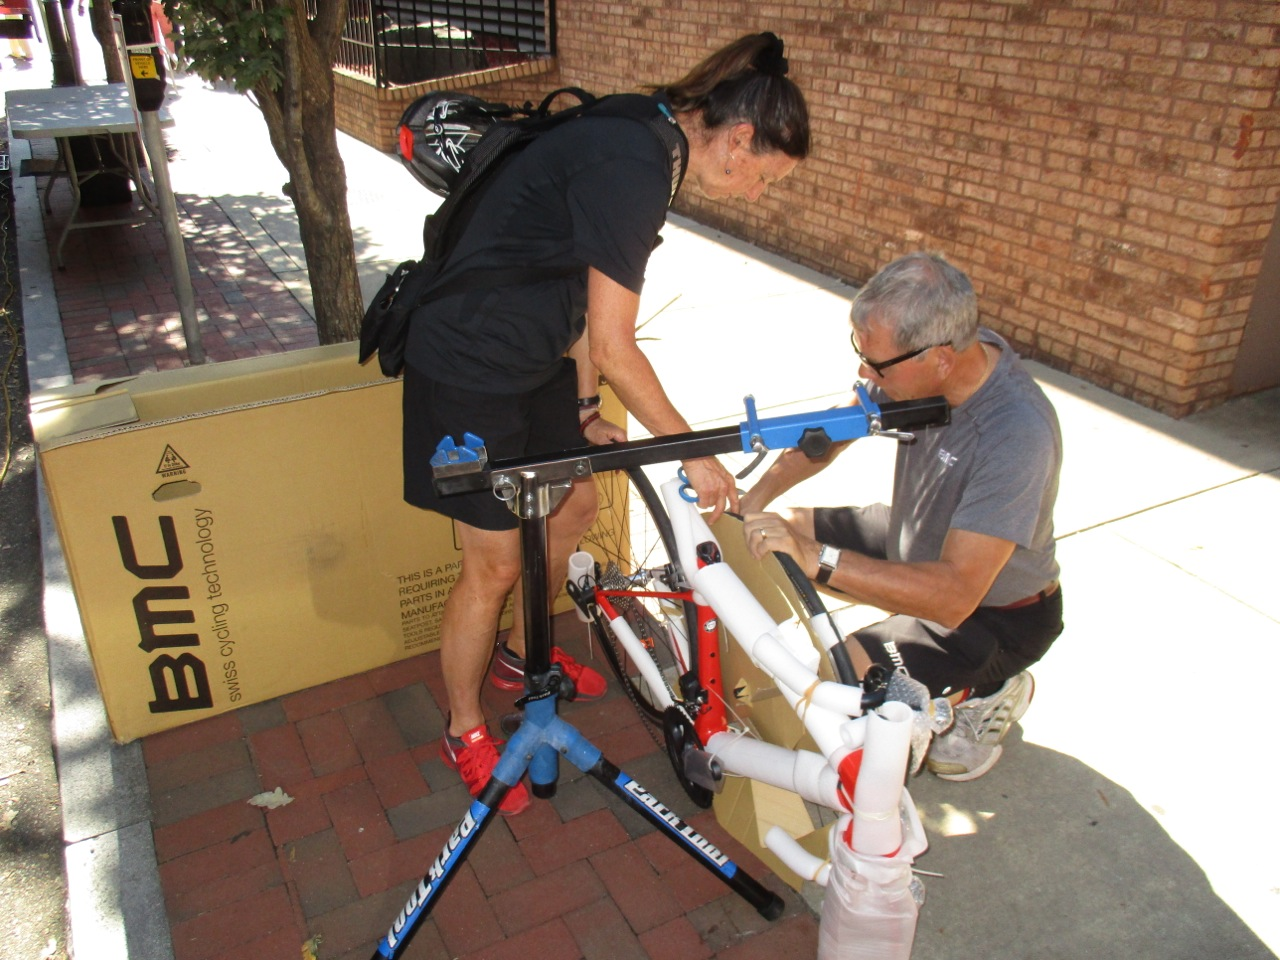 Trudi got a new road bike from BMC. Looks like Andrej Bek is helping her assemble it.